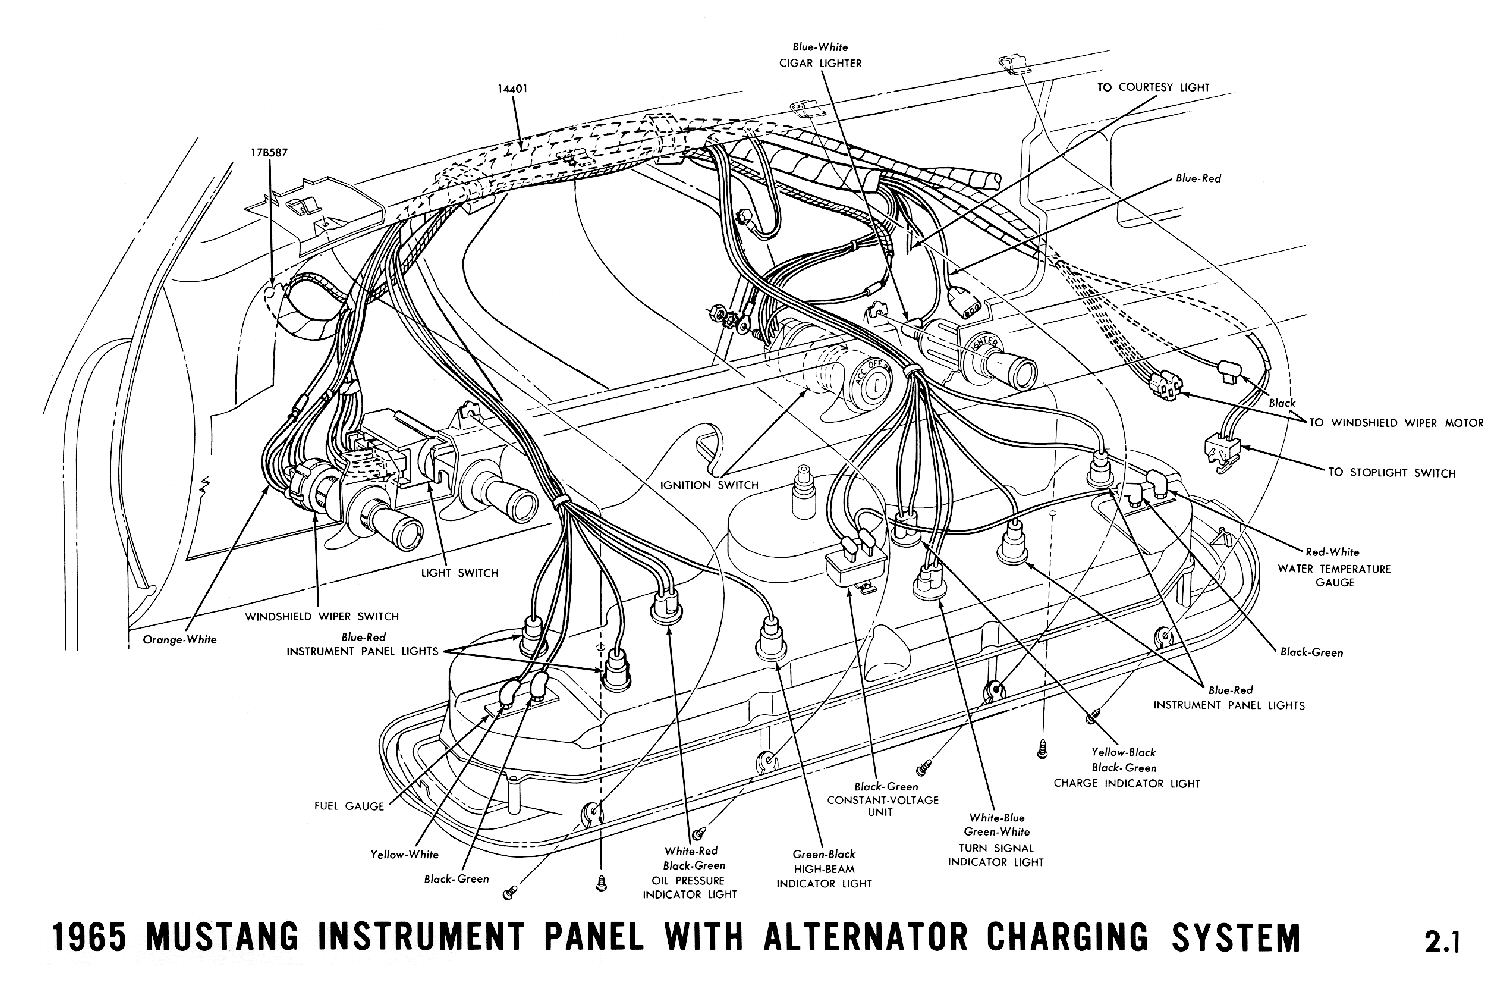 1965a 1965 mustang wiring diagrams average joe restoration 1966 mustang wiring harness kit at n-0.co